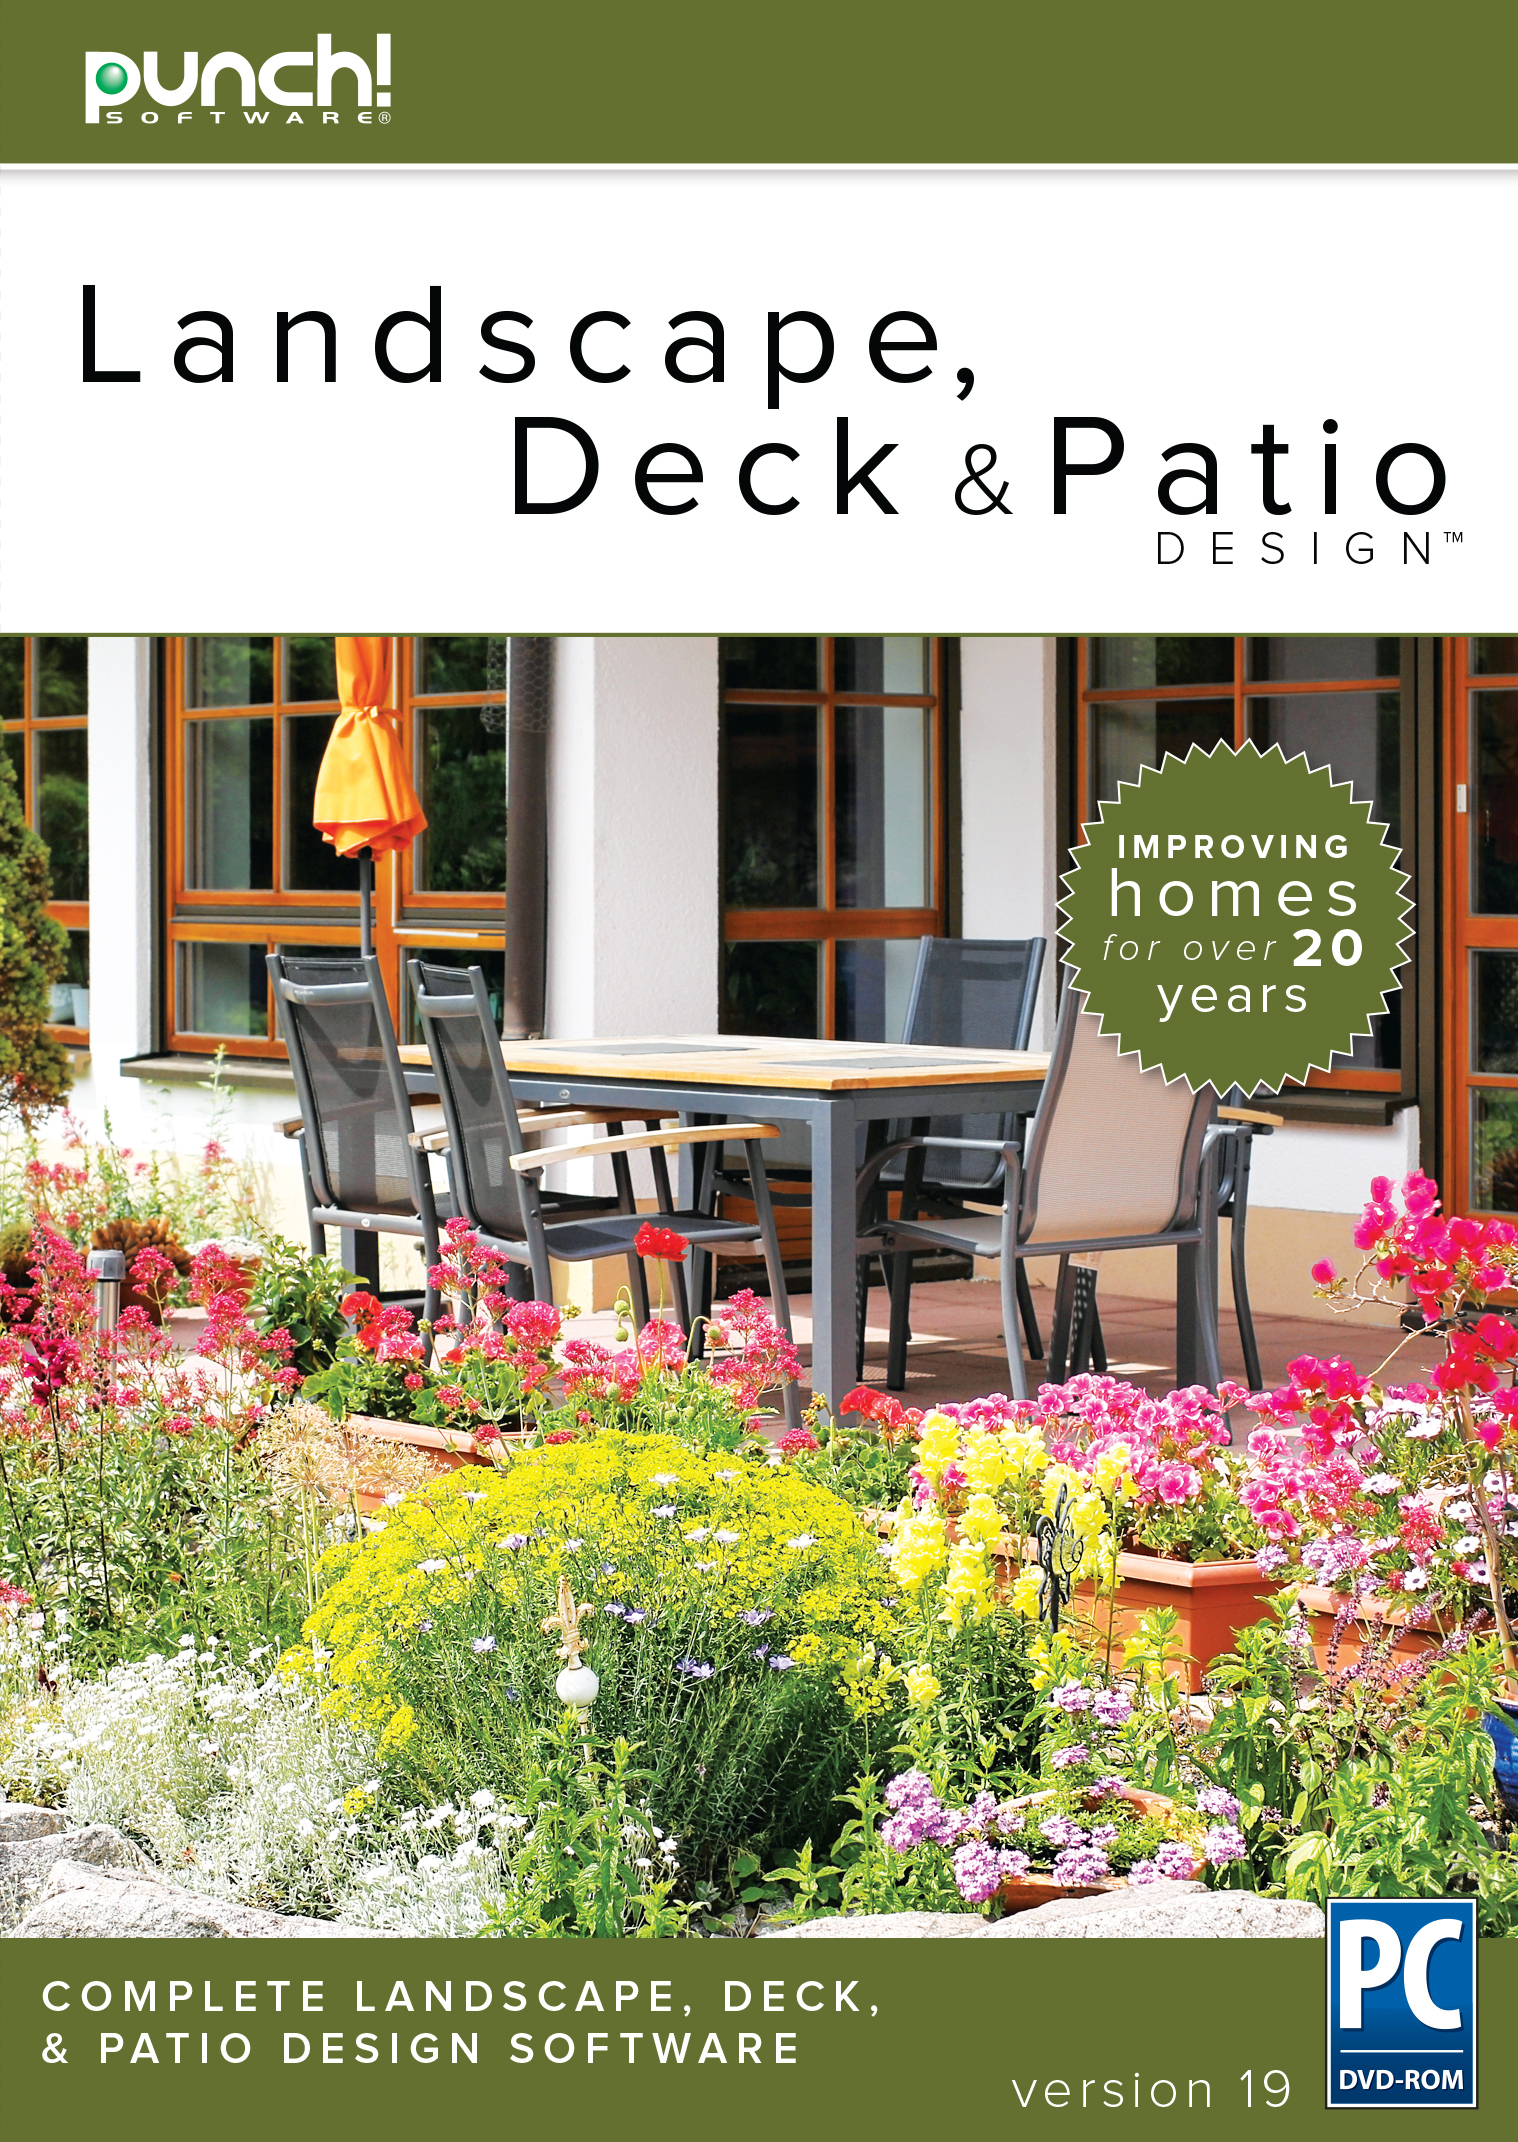 Cheap  Punch! Landscape, Deck and Patio Design v19 for Windows PC [Download]